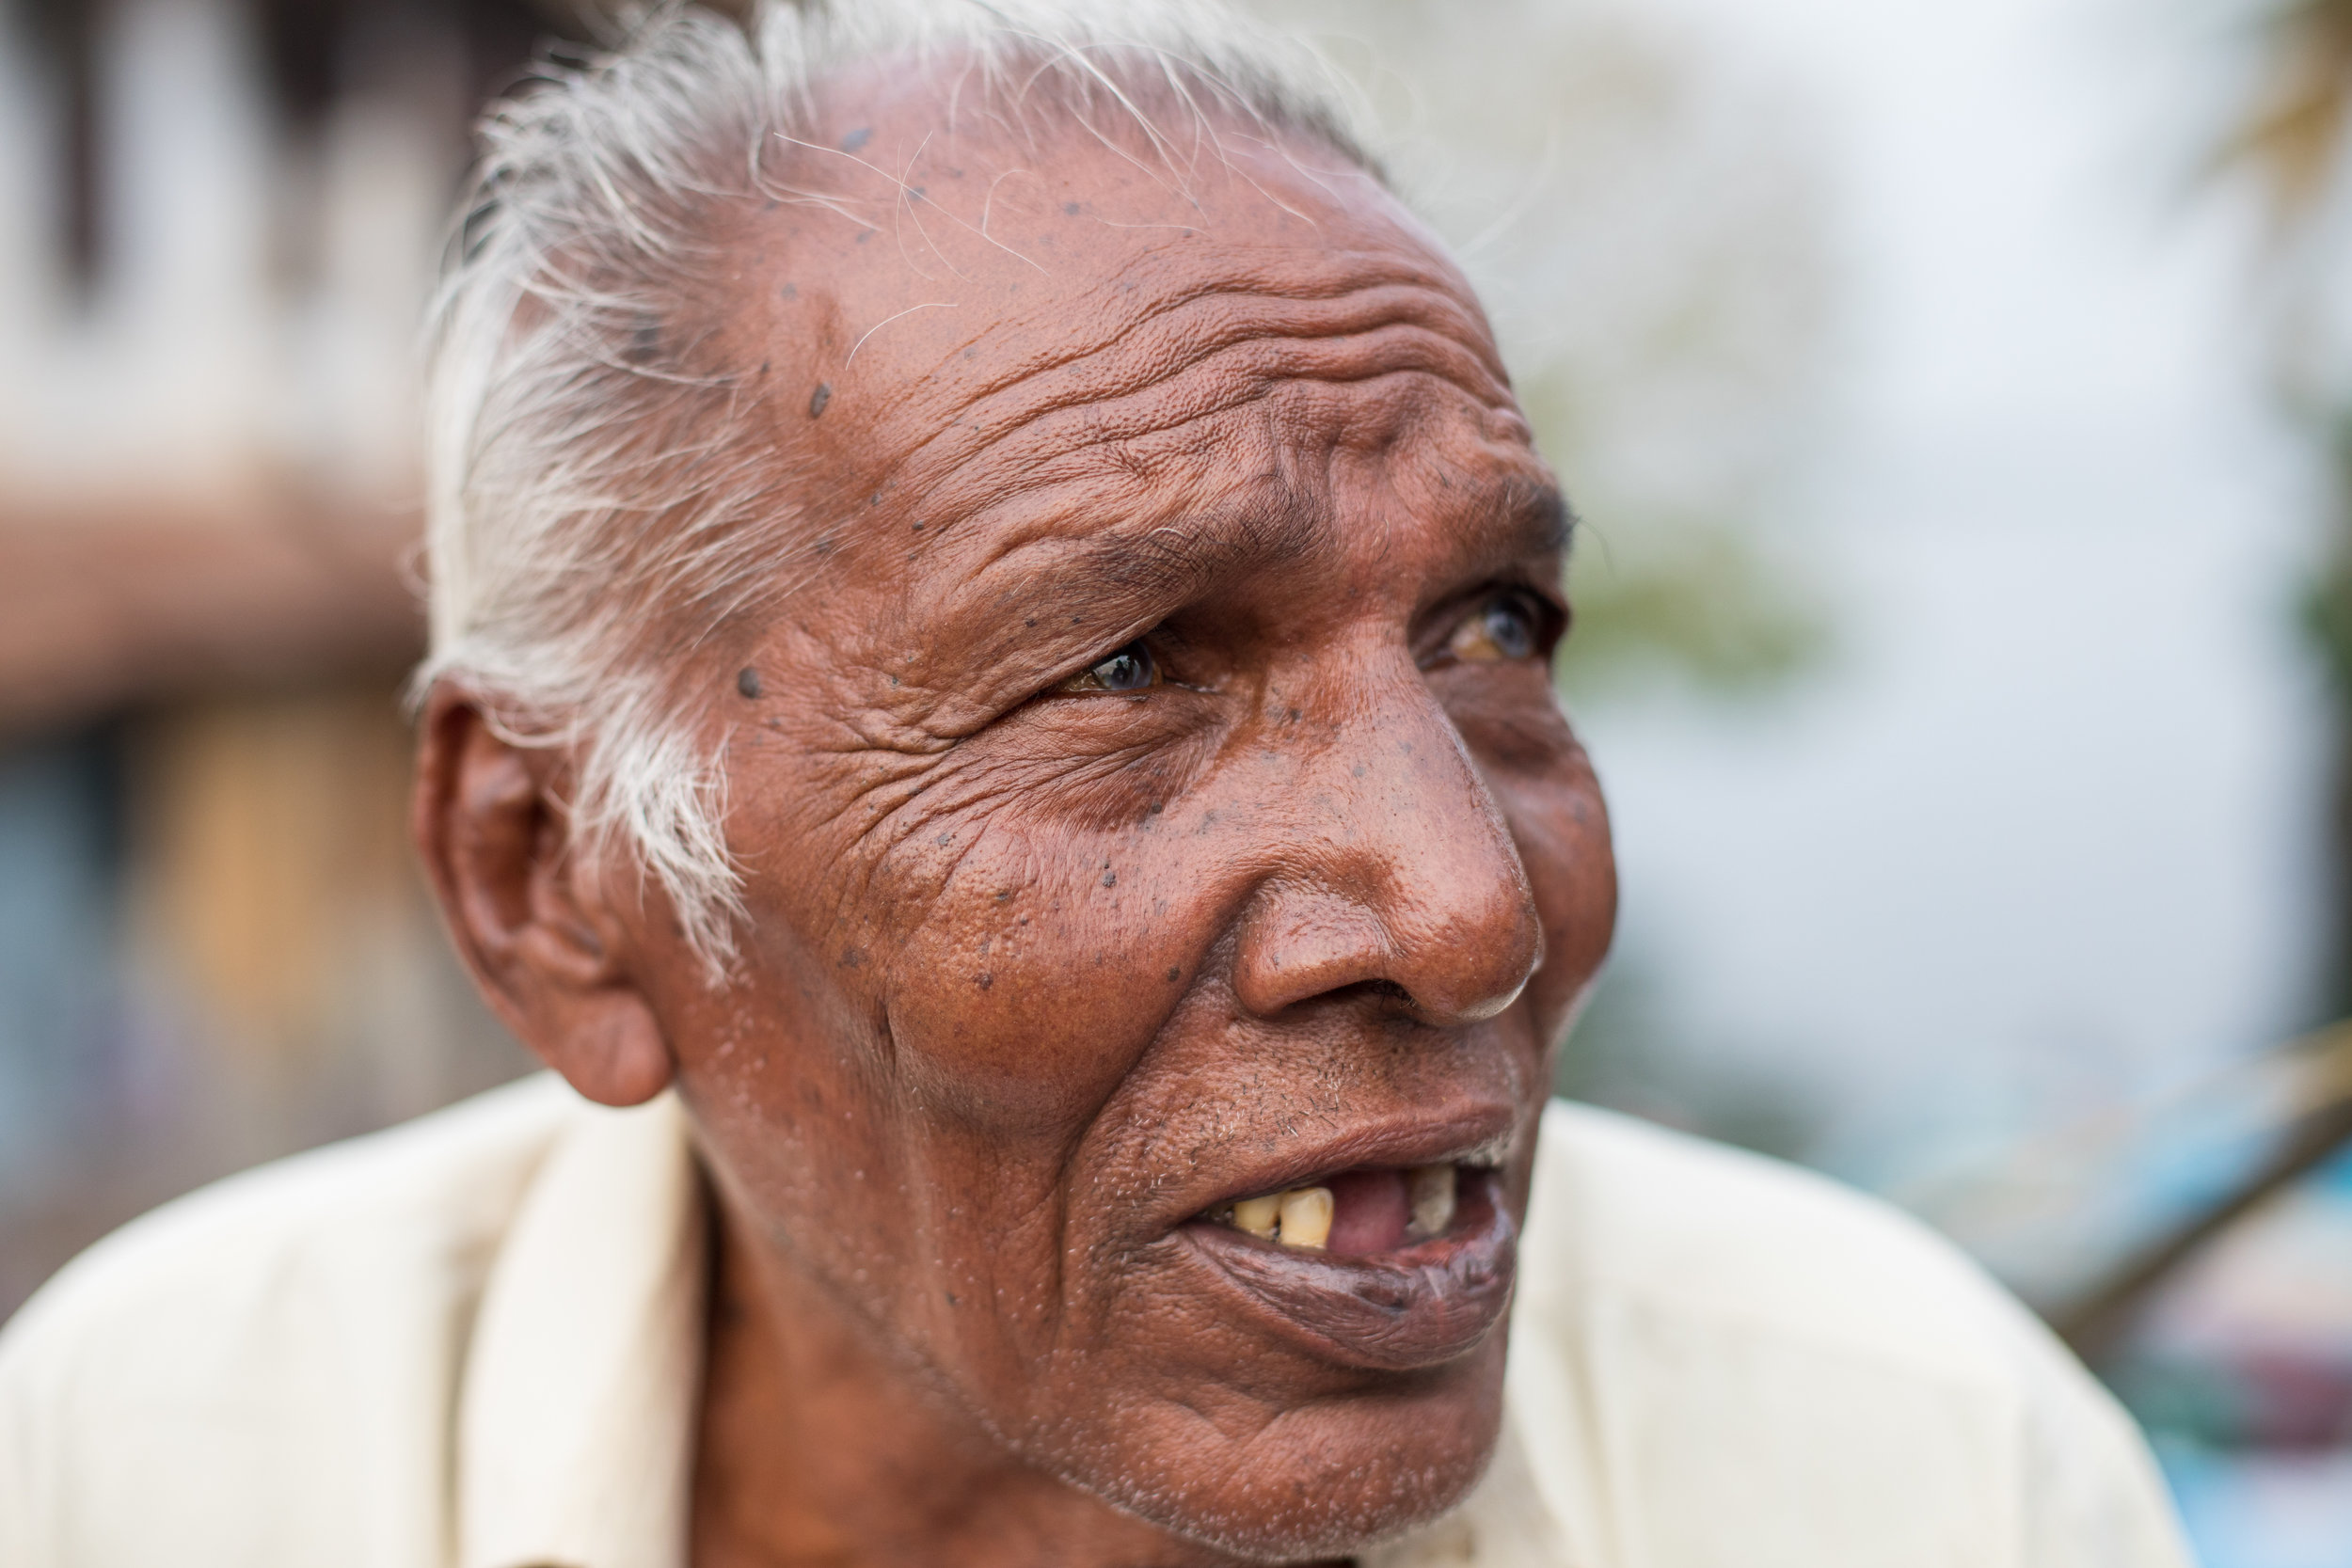 Head Shot of an Indian Man from Fort Kochi by Geraint Rowland.